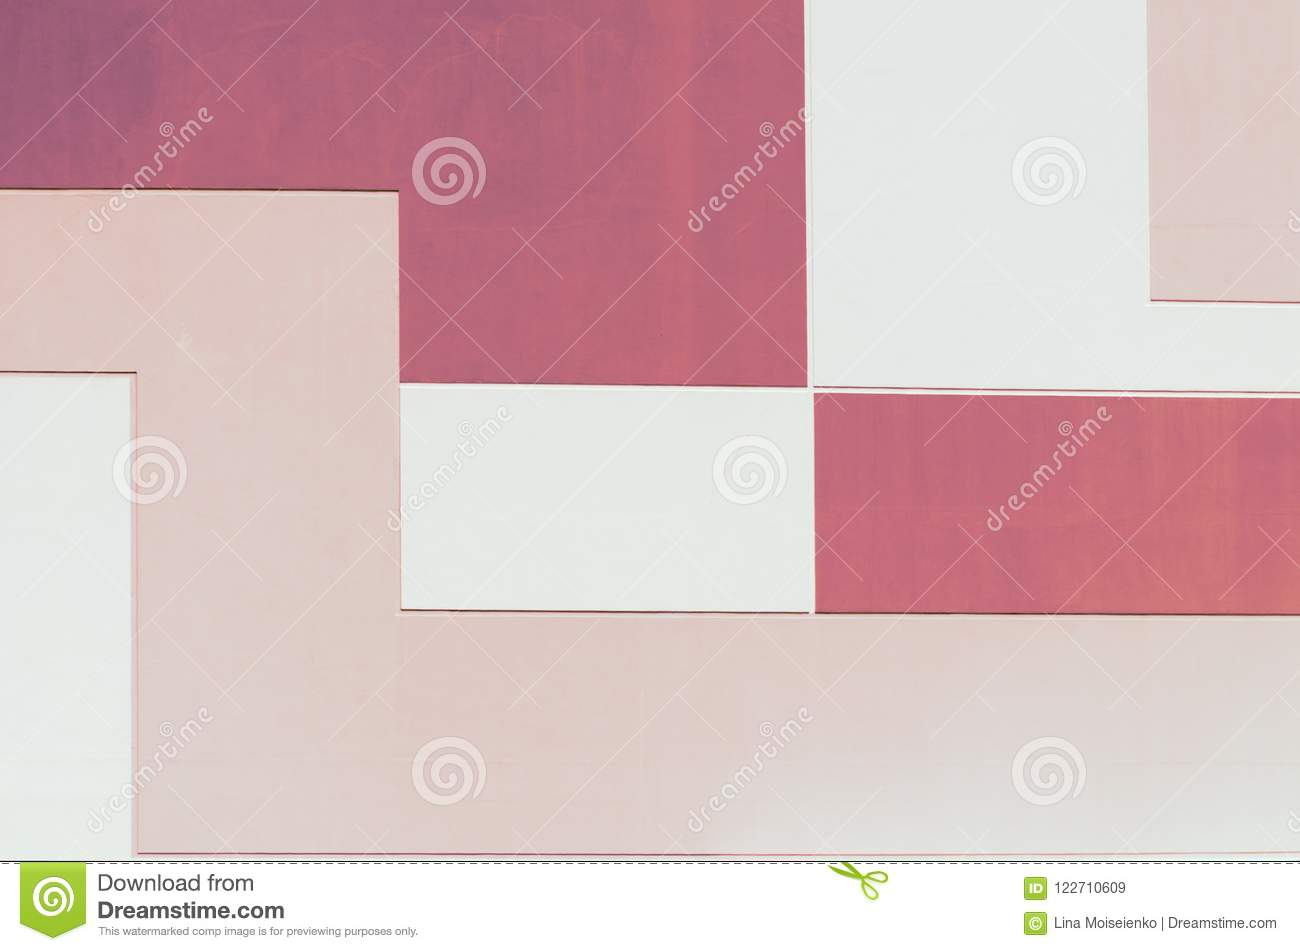 Wall in pastel two color, geometric abstract background, rectangular shape